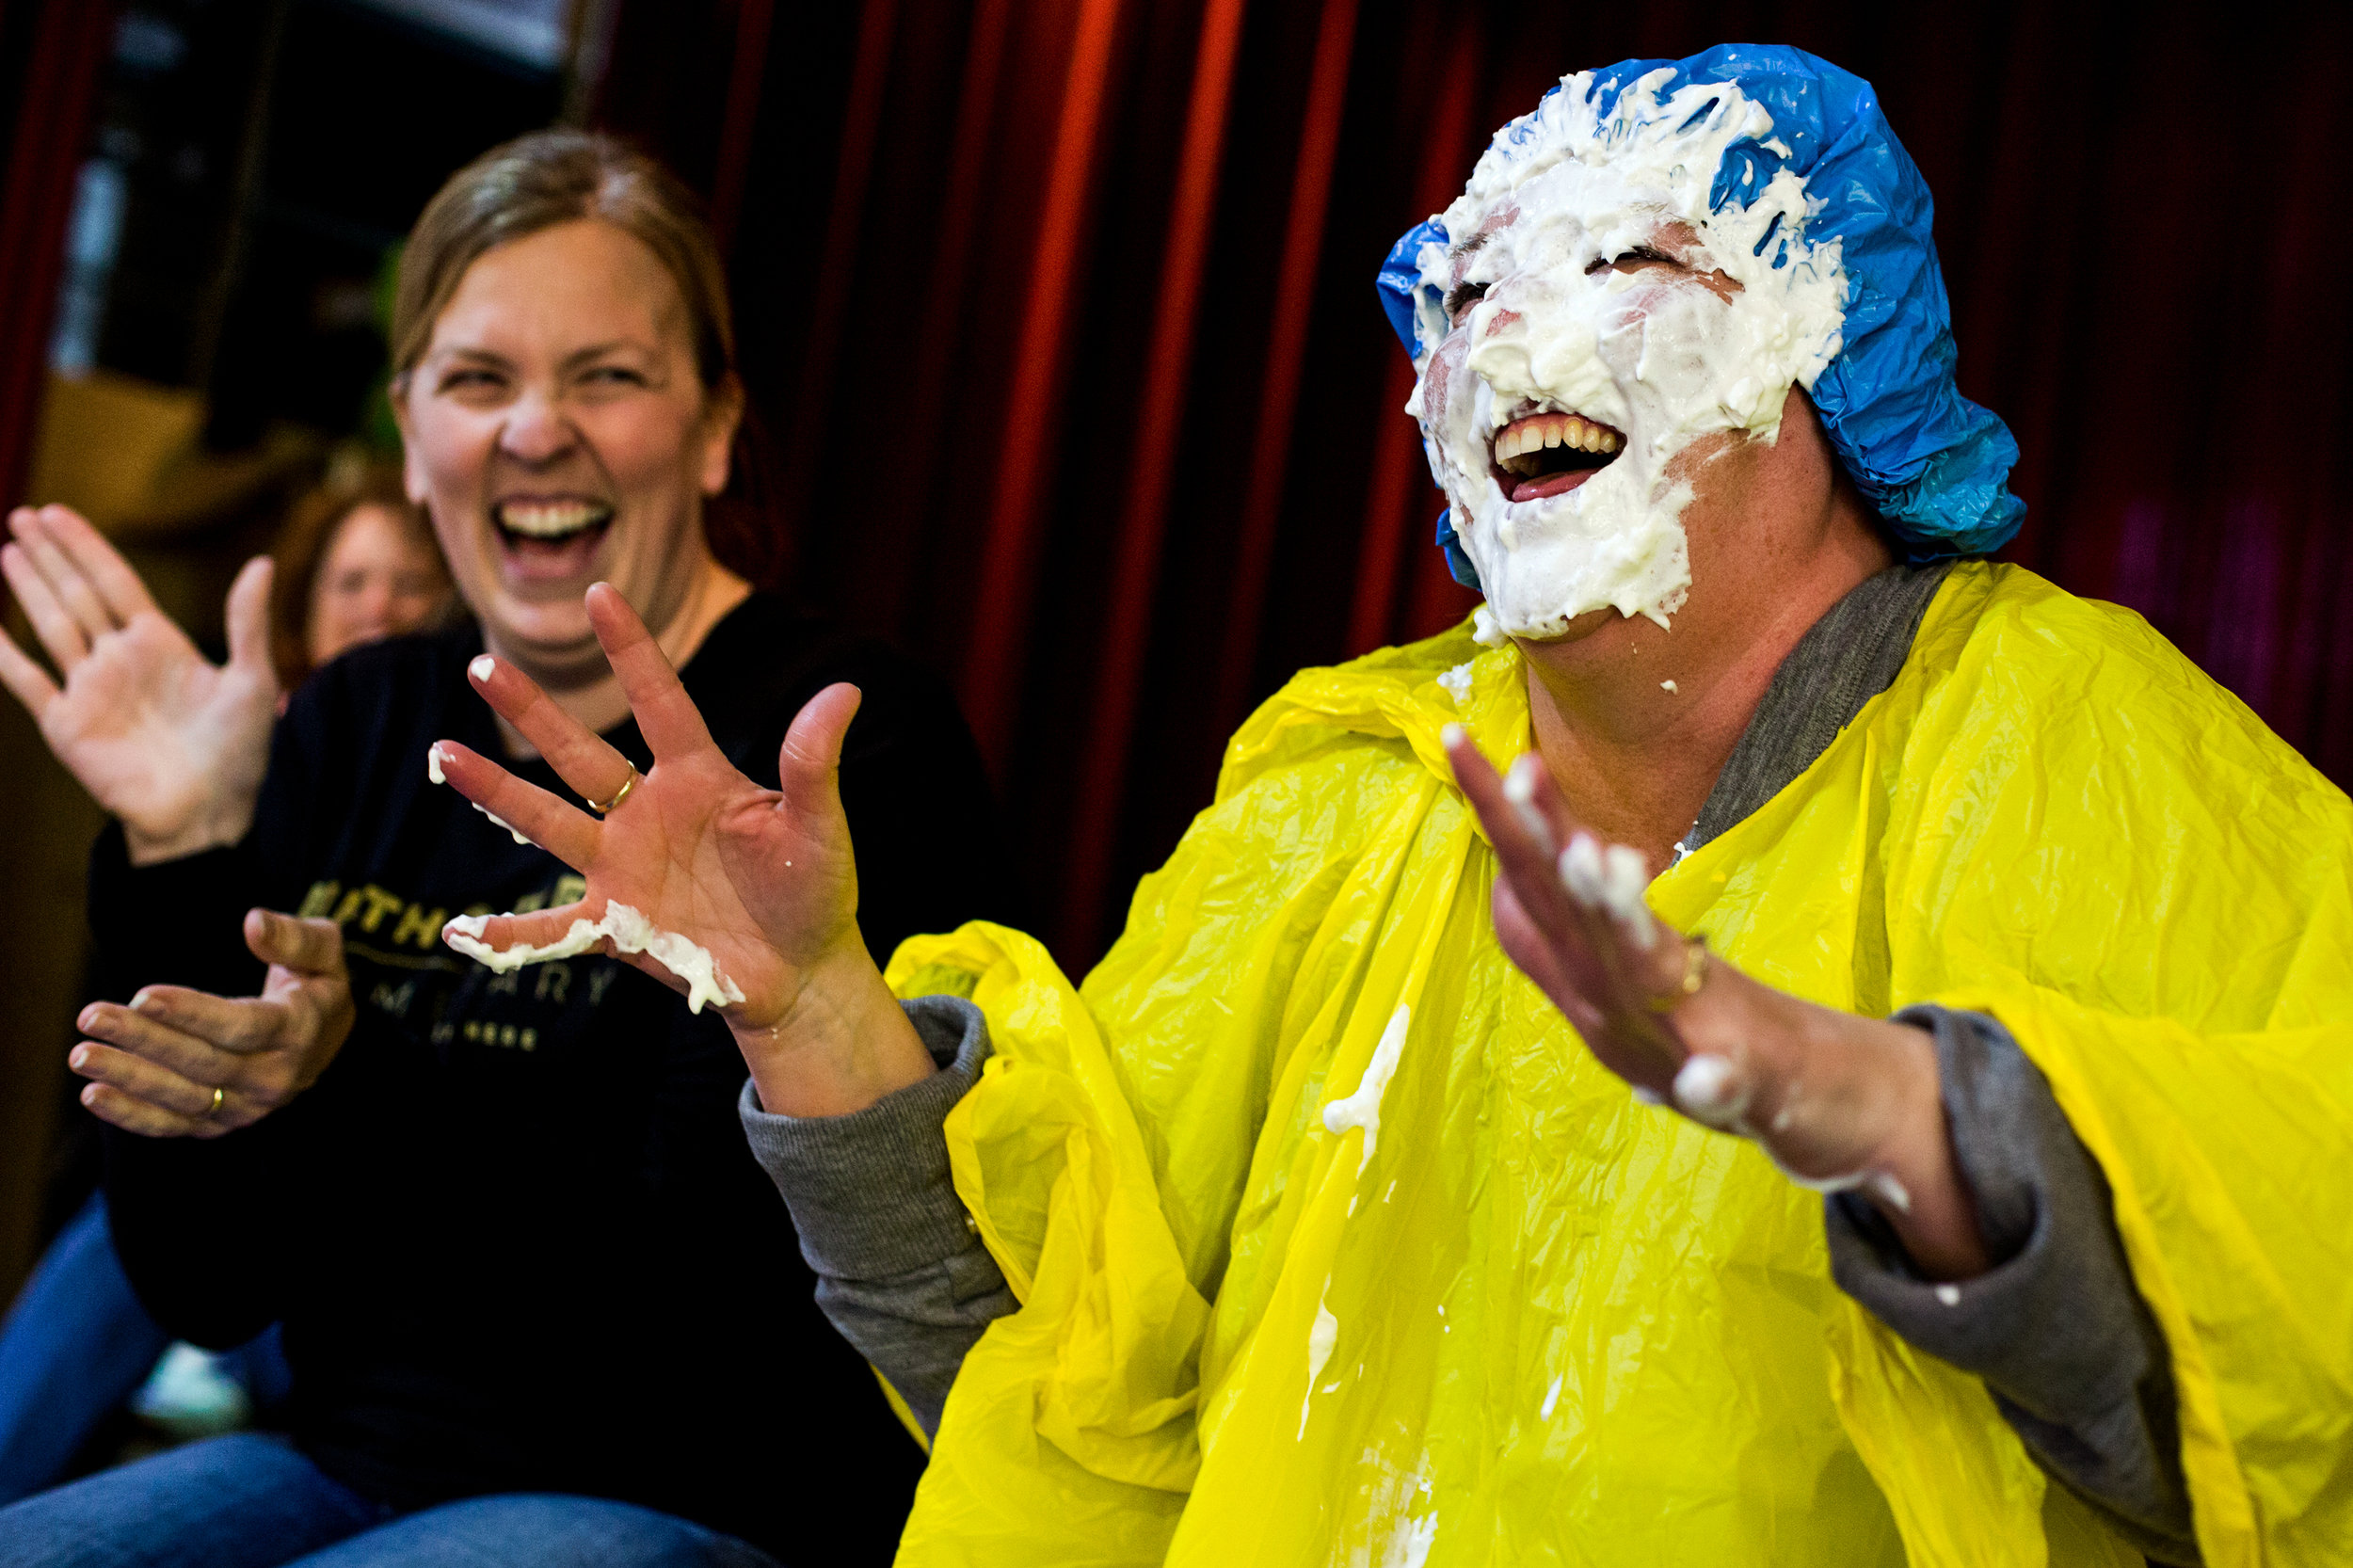 Fifth Street School second-grade teacher Karen Pieper laughed after student Makenna Cummins threw a cream pie in her face Thursday during the Jasper school's fundraiser for Mentors for Youth Super Strikes. The school registered two teams in the annual Super Strikes event and raised more than $1,400, exceeding the goal by more than $400.